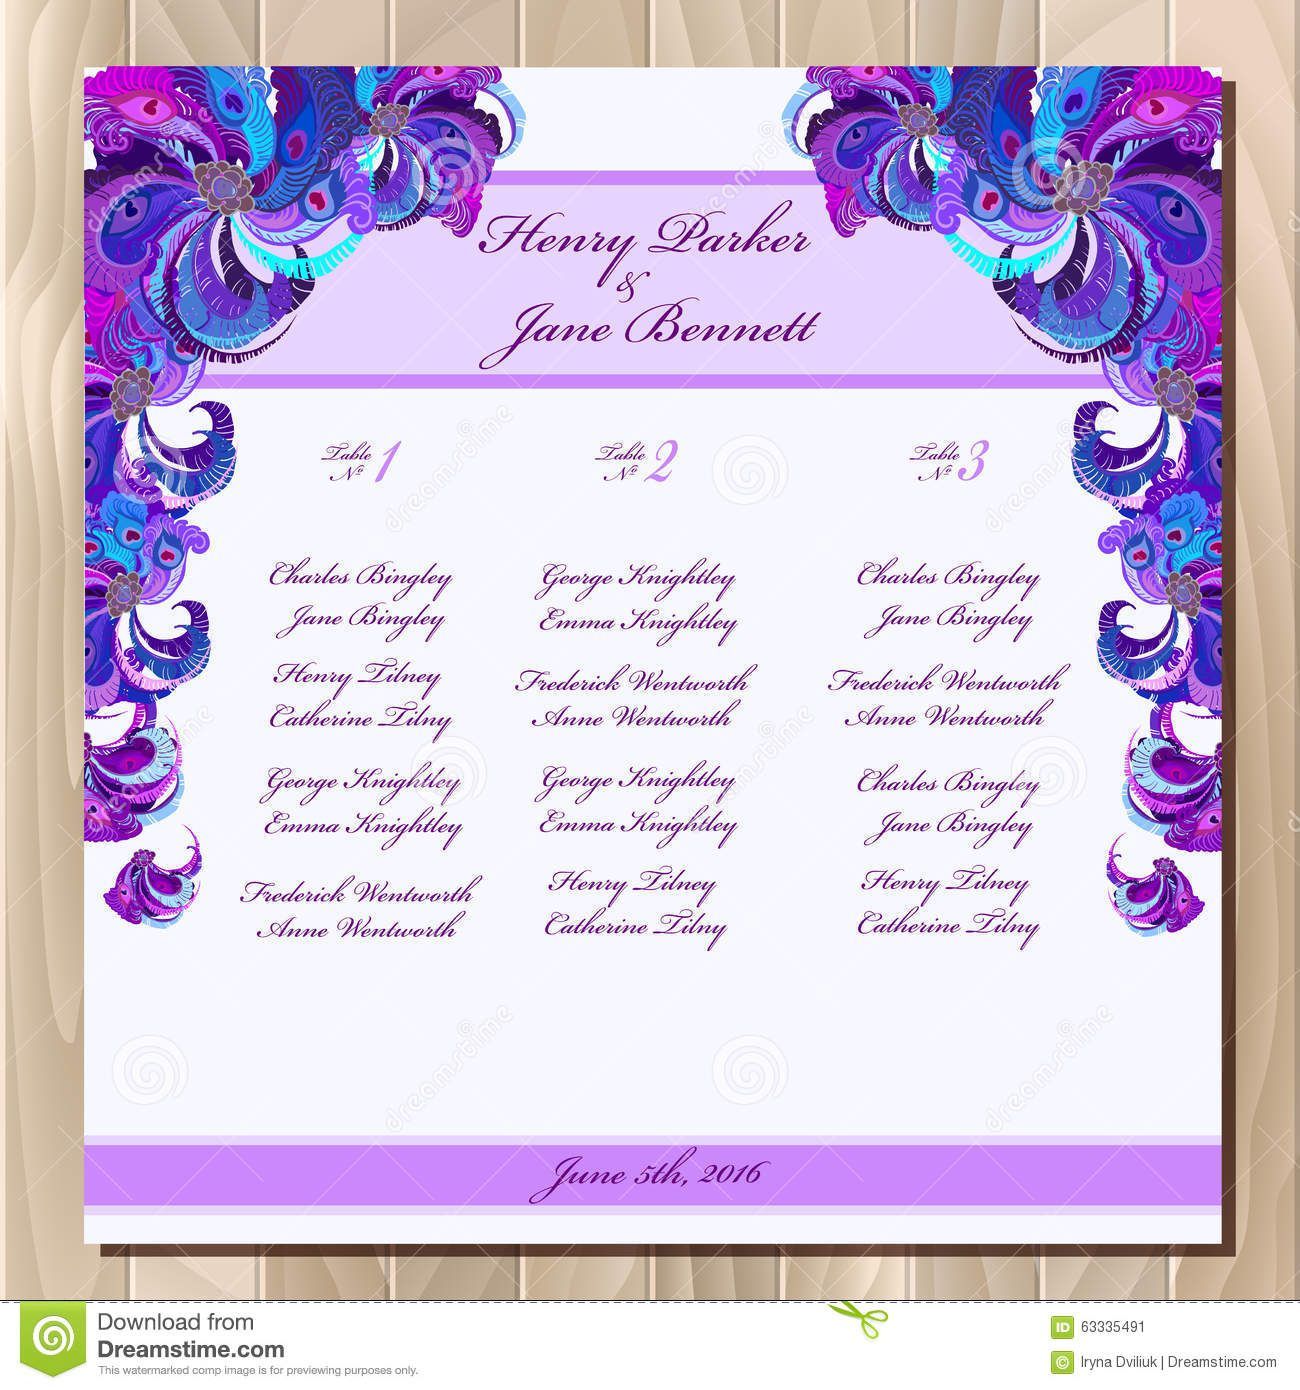 007 Singular Party Guest List Template Excel Free Highest Quality Full